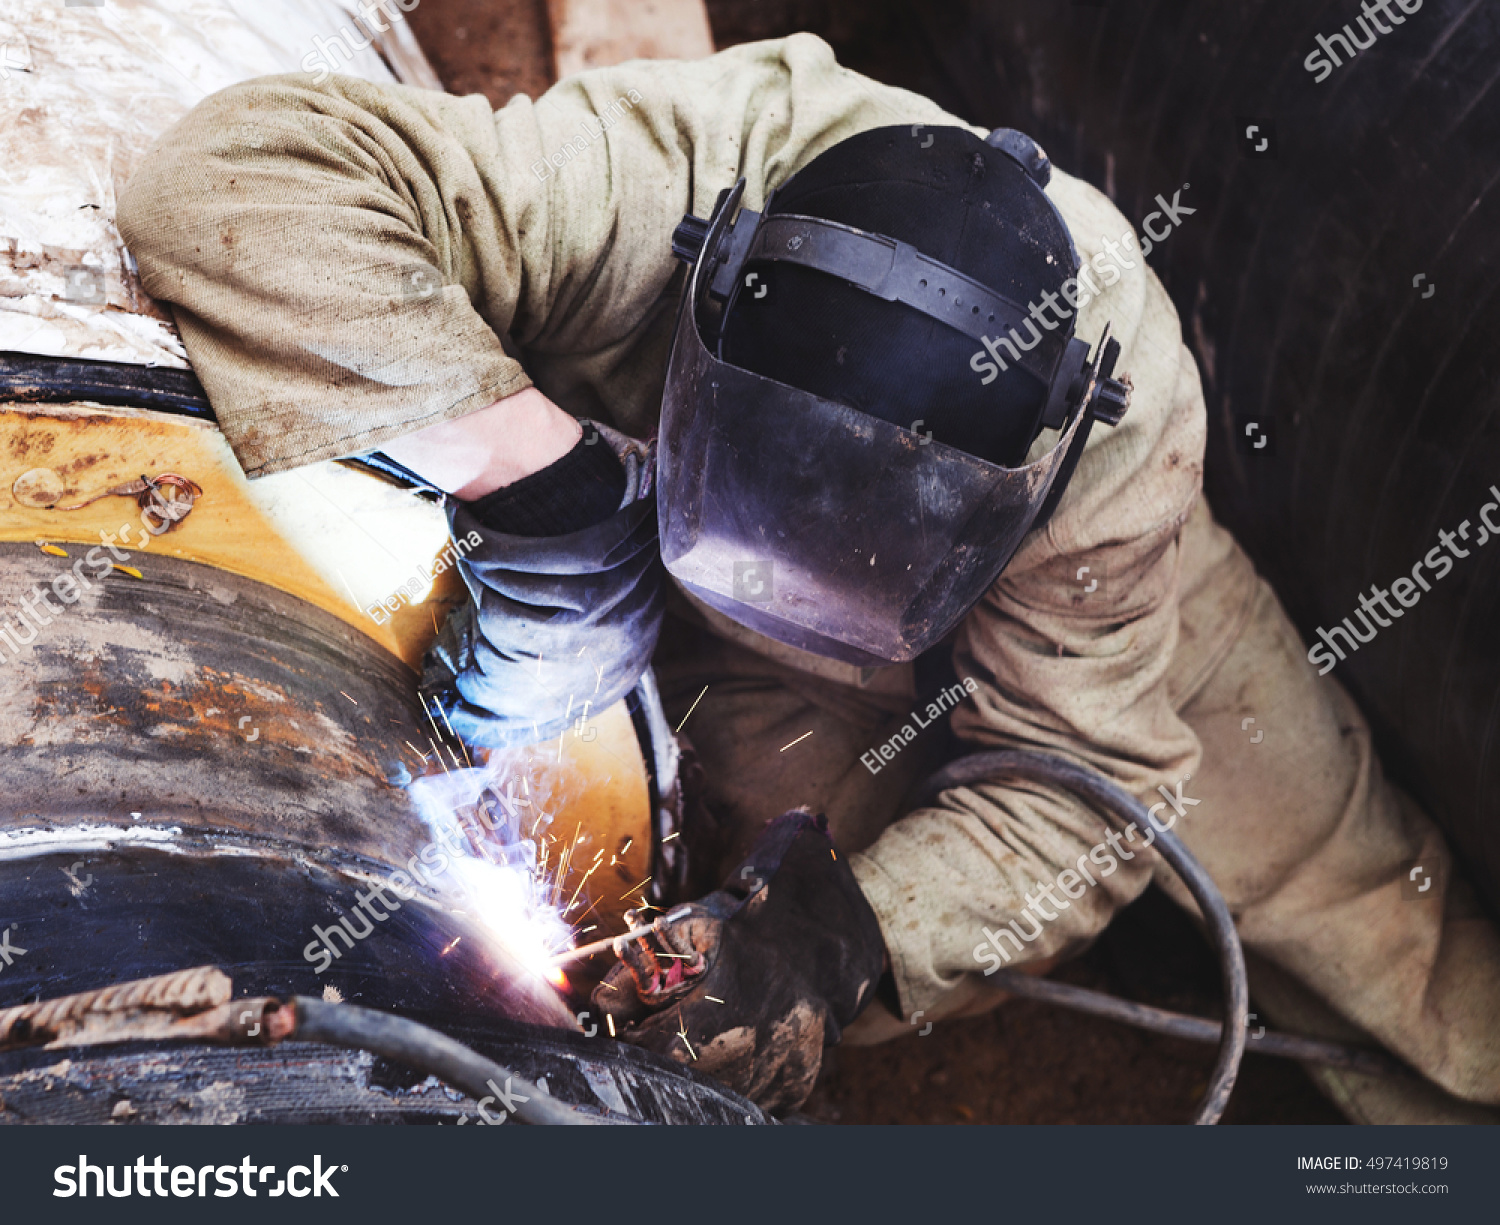 Royalty-free Repair of heating duct  The workers,… #497419819 Stock